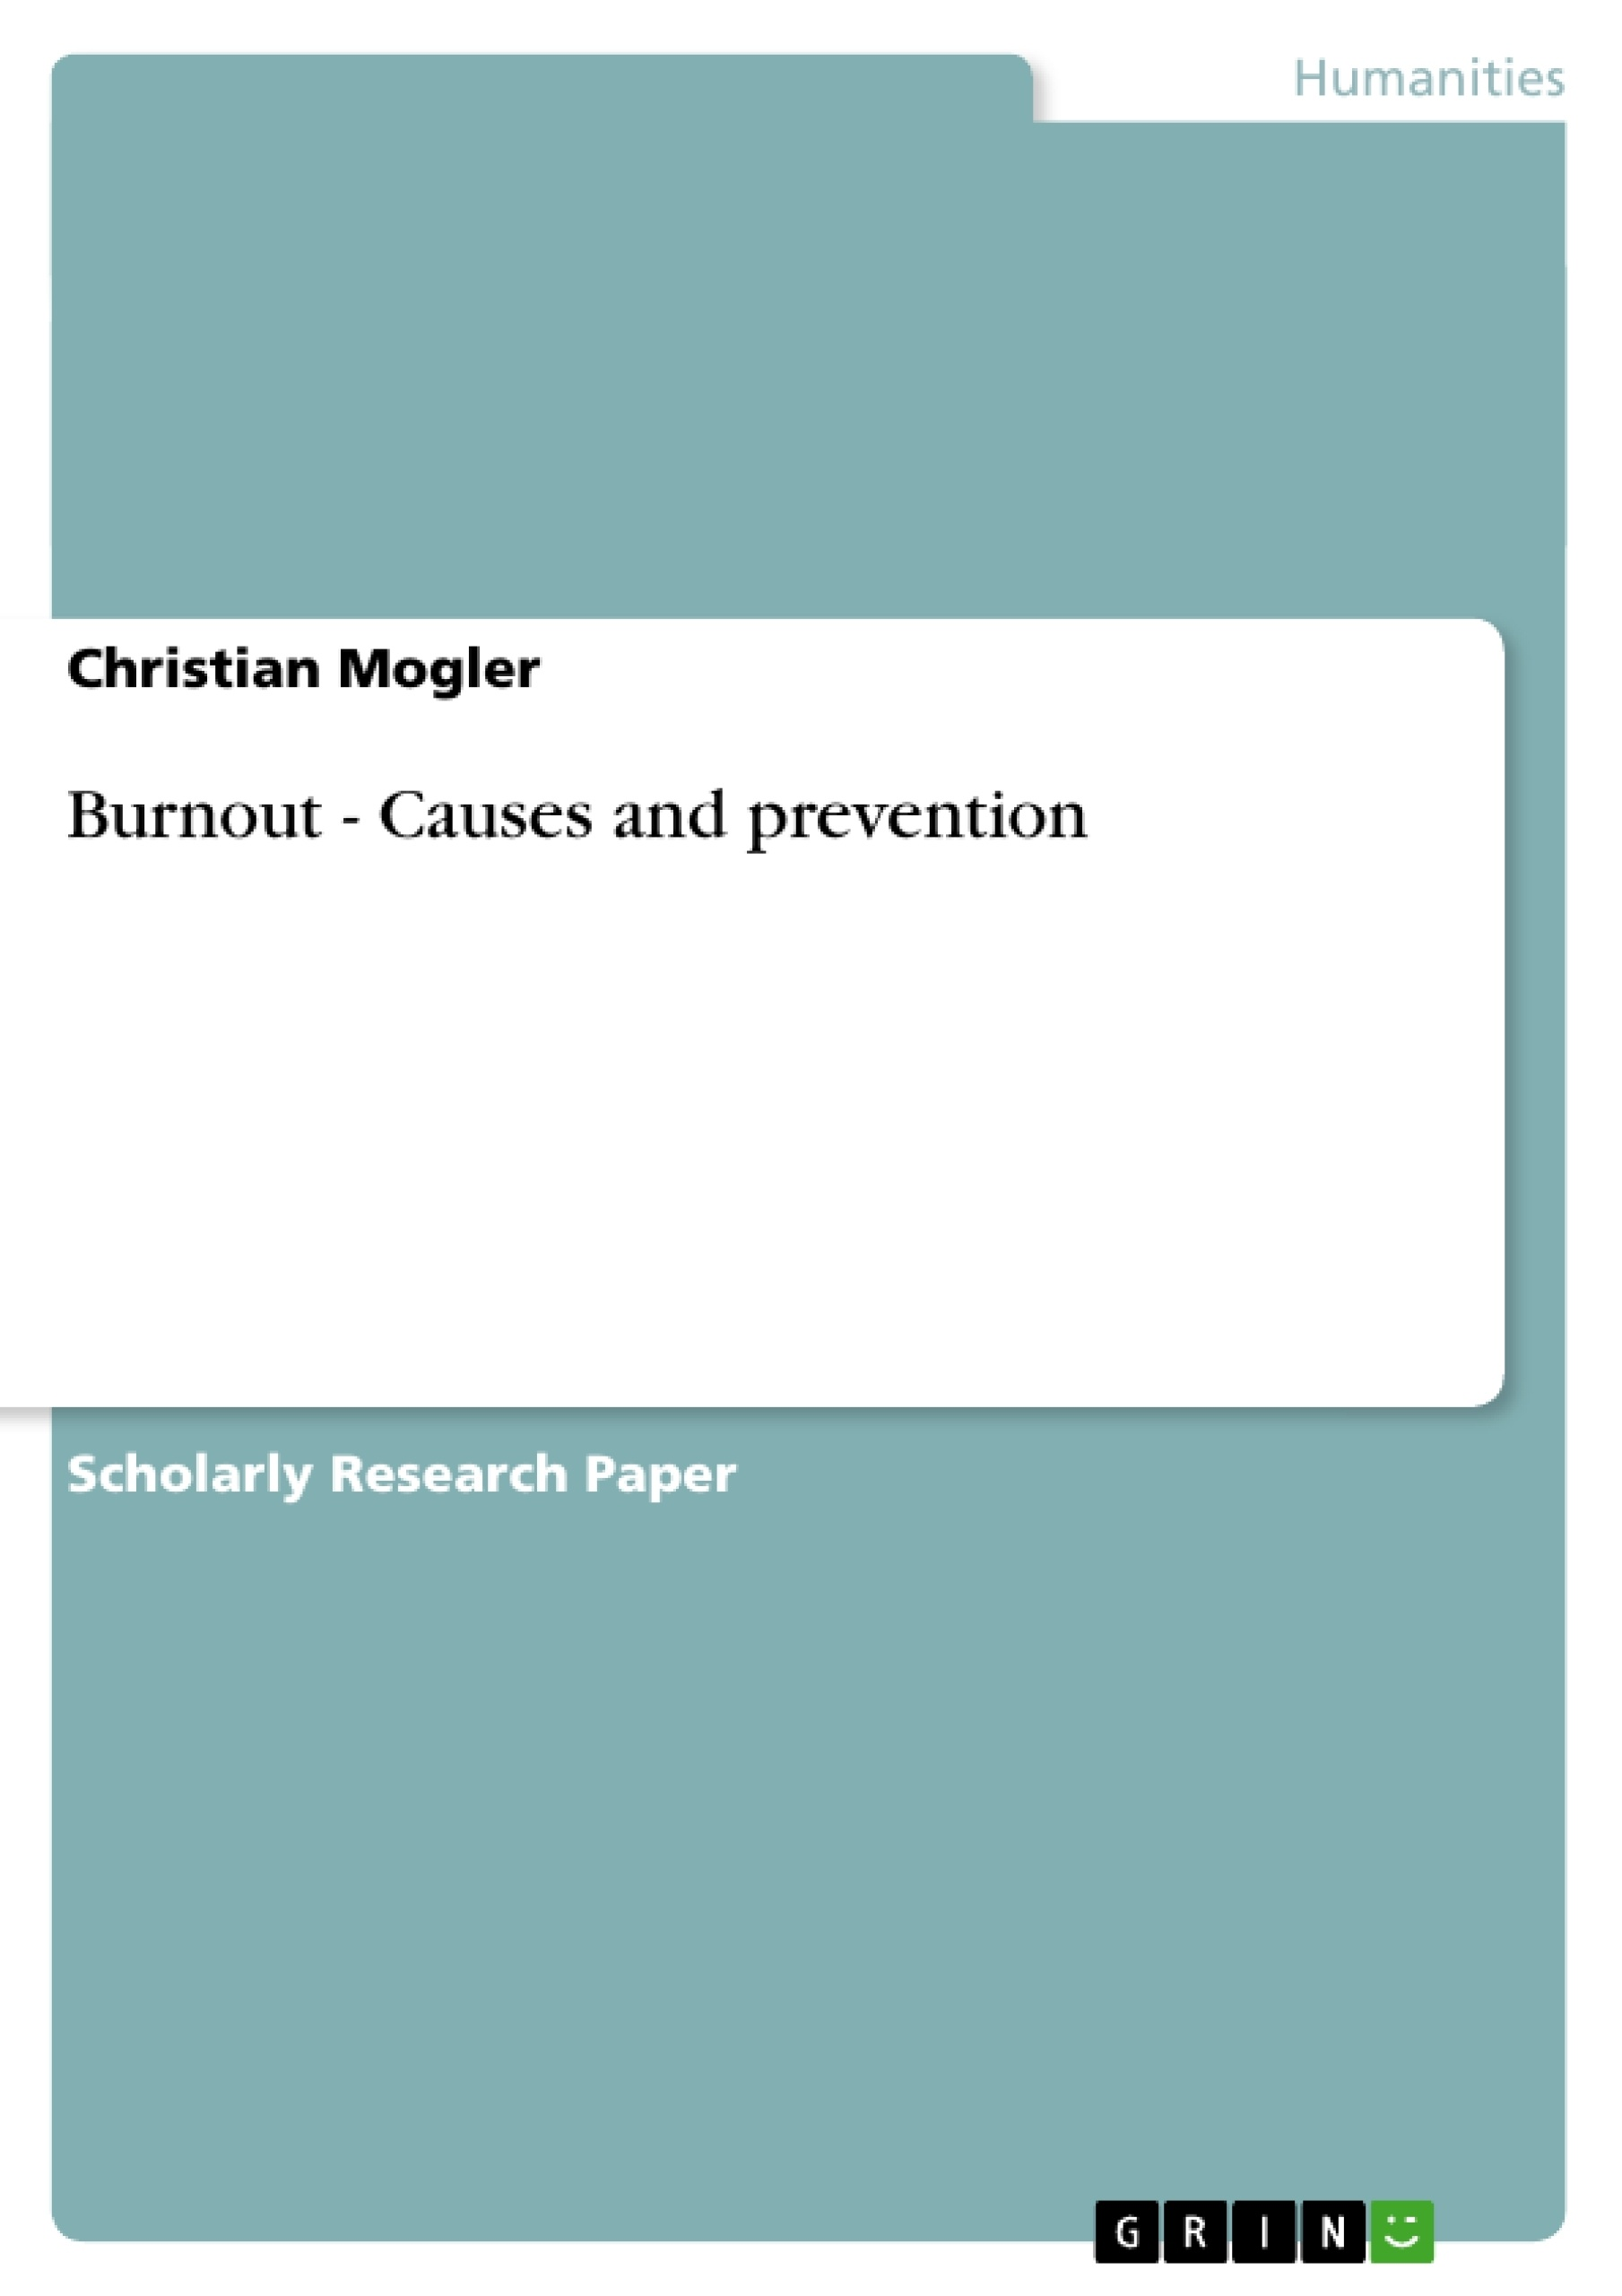 Title: Burnout - Causes and prevention